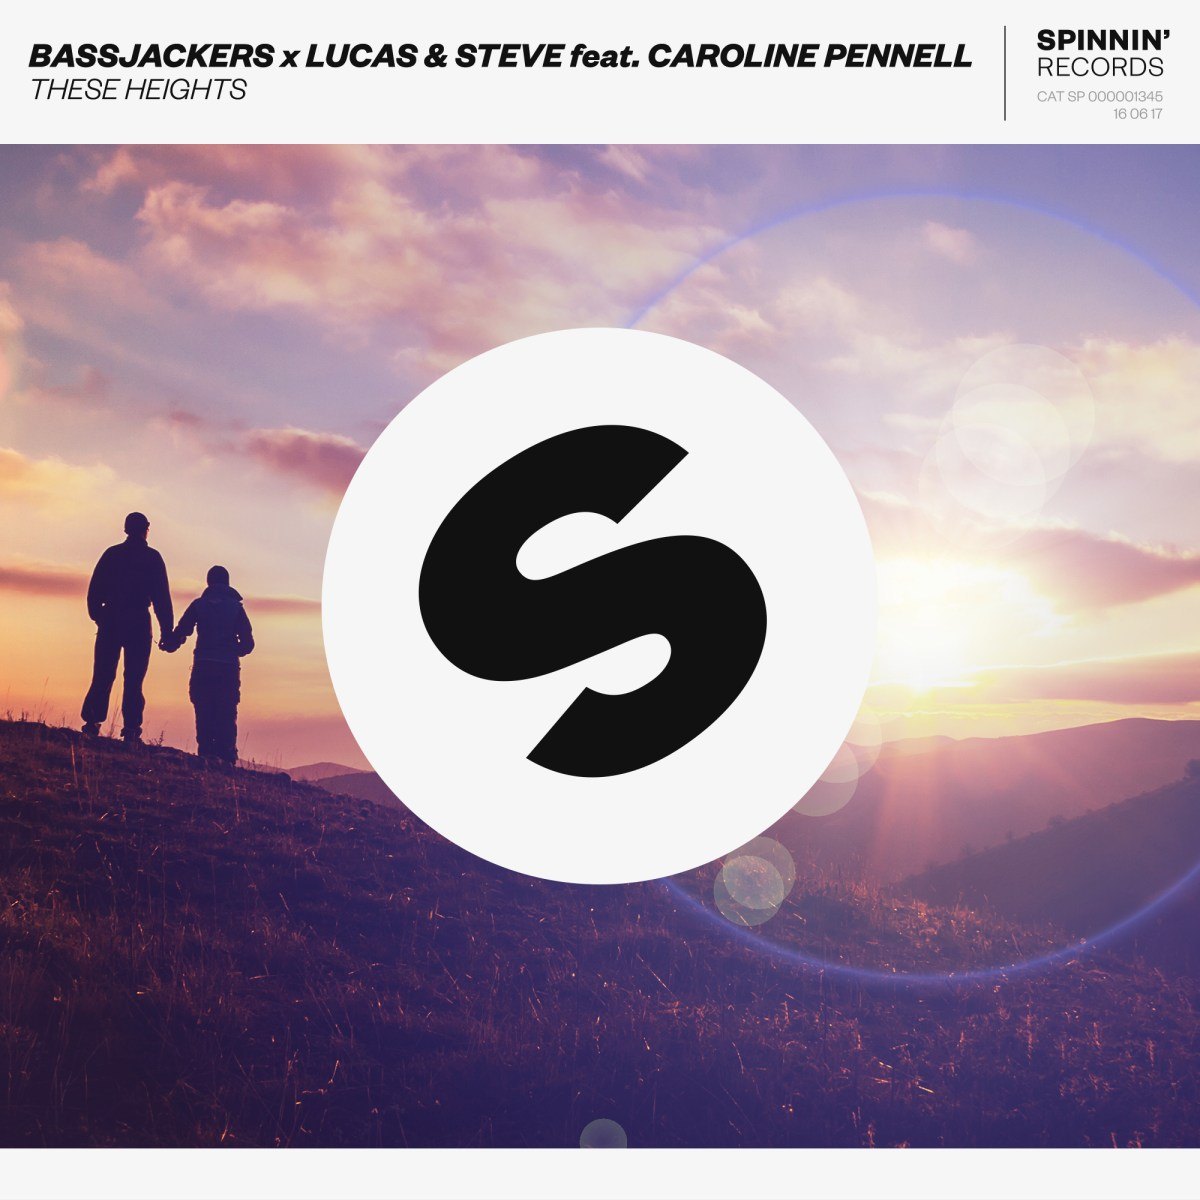 Bassjackers x Lucas & Steve feat. Caroline Pennell - These Heights [Spinnin' Records]